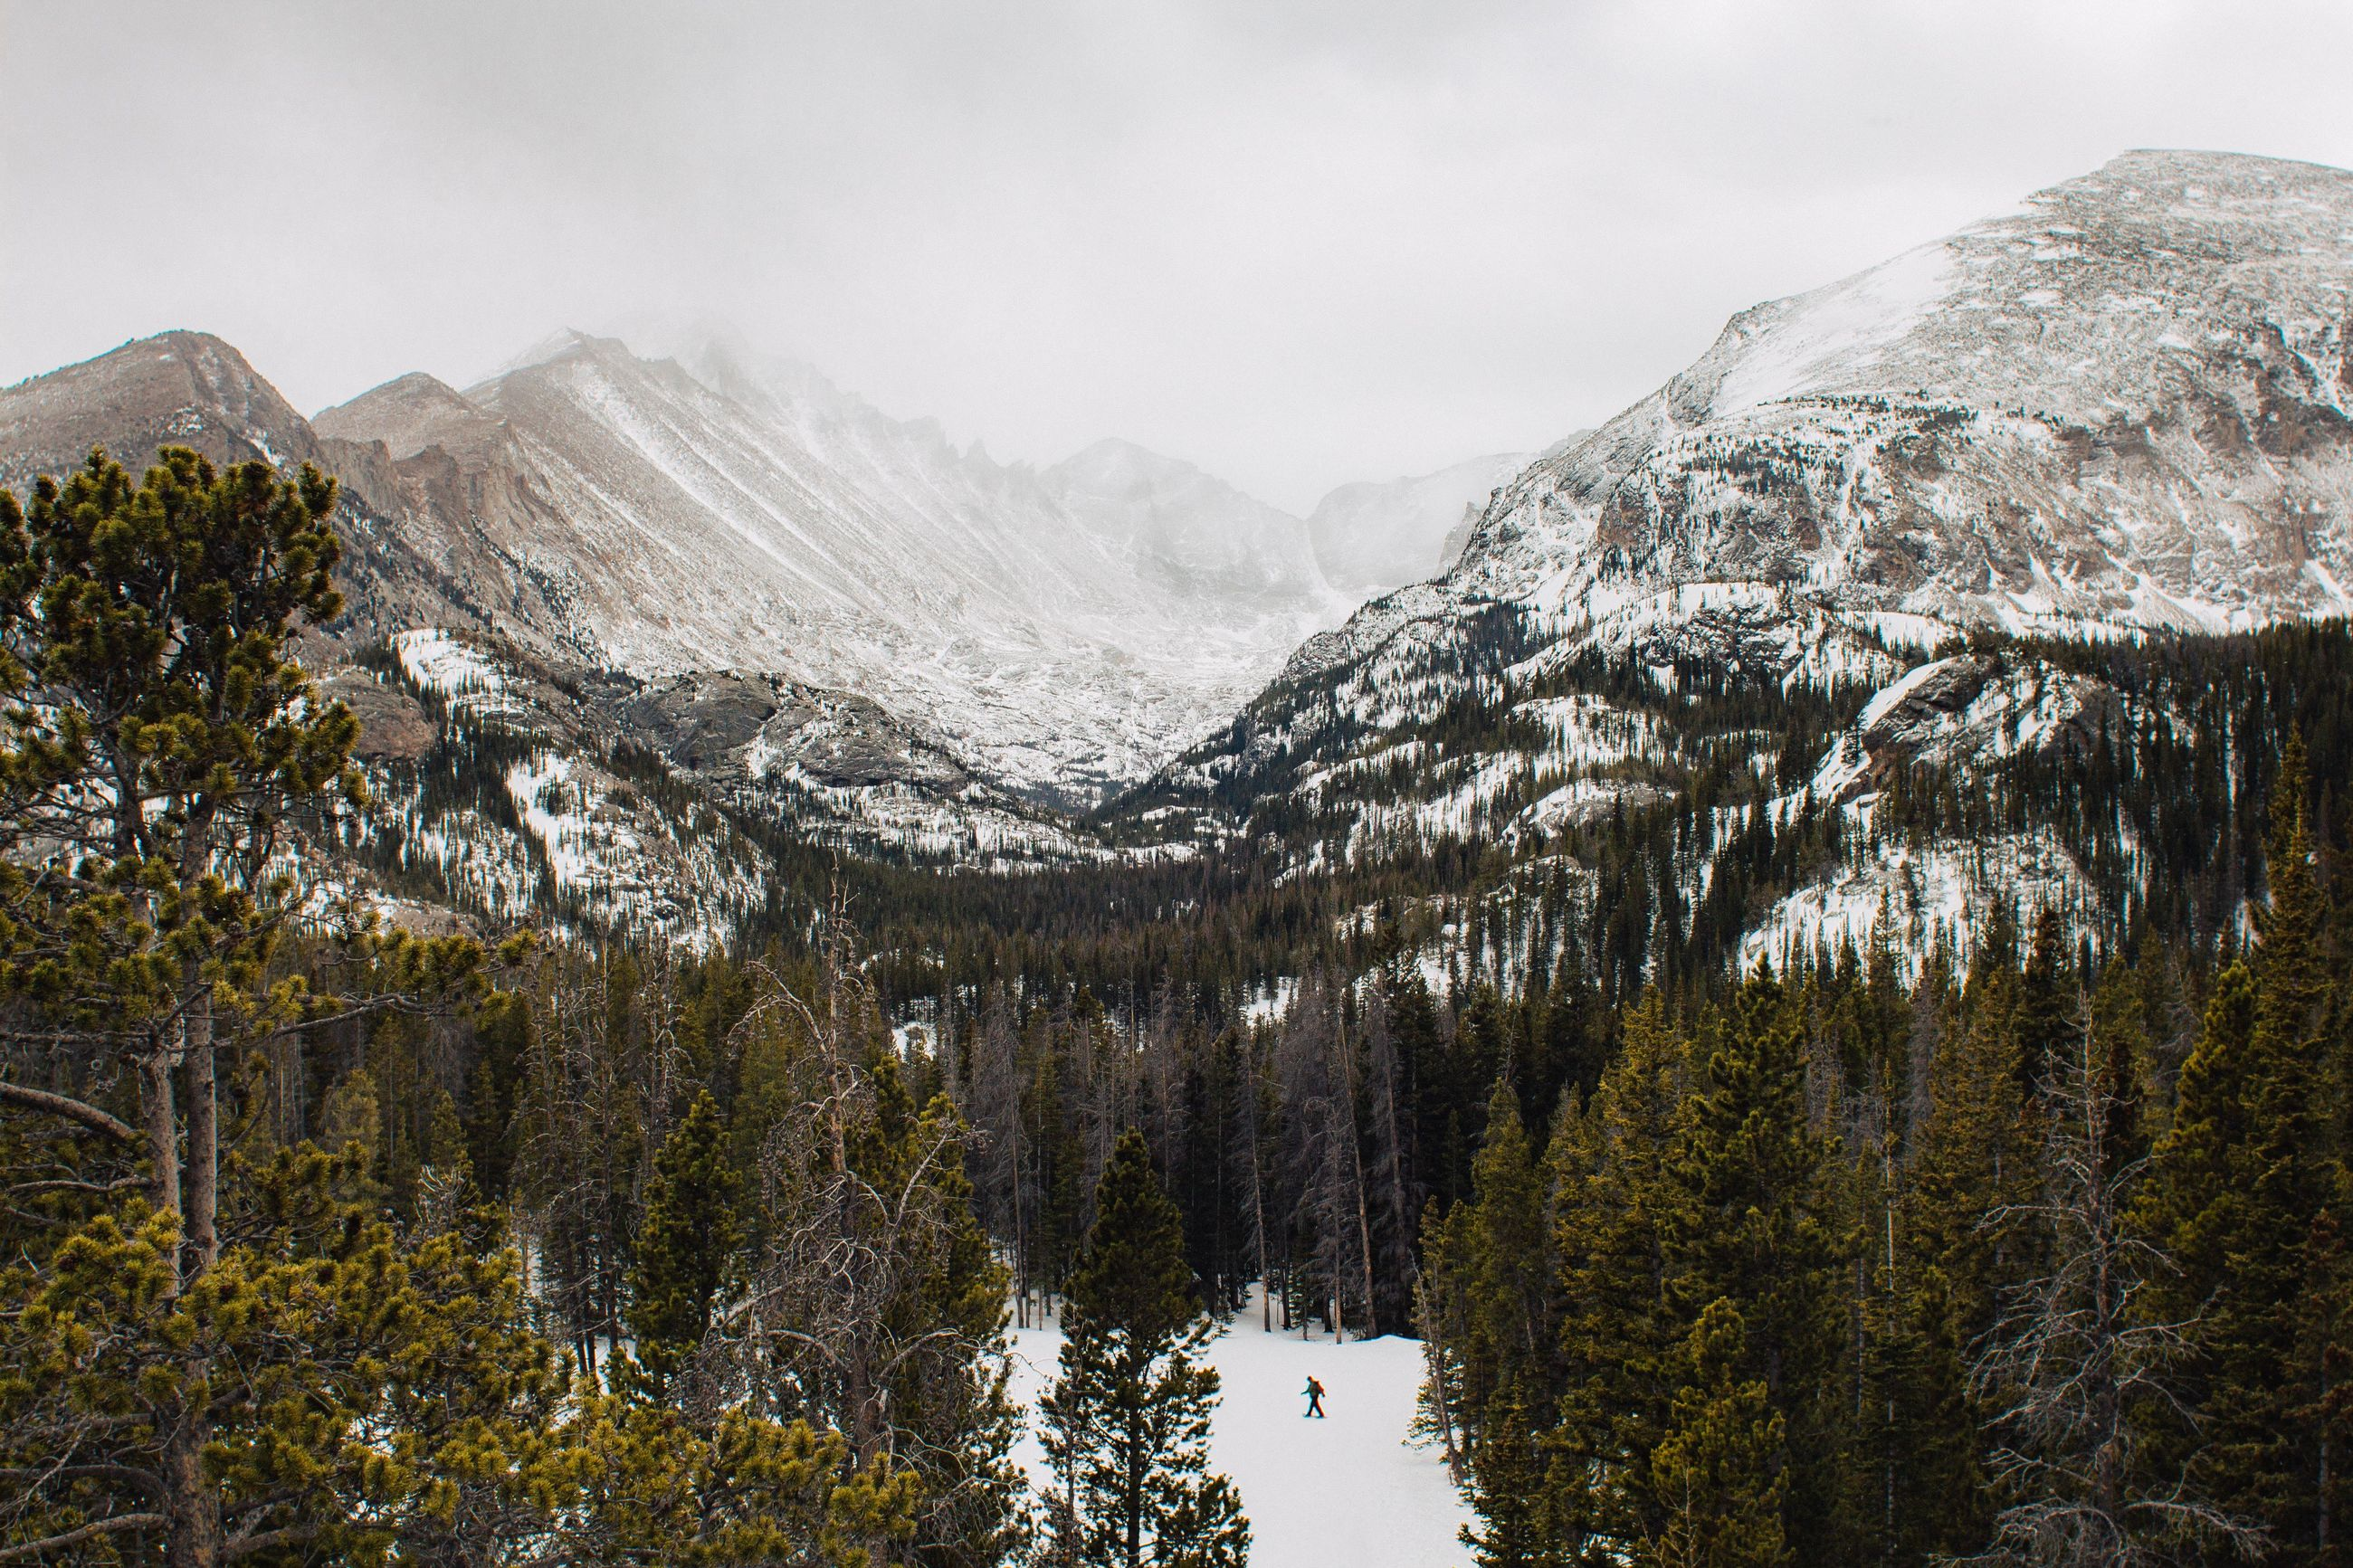 mountain, beauty in nature, sky, environment, scenics - nature, tree, snow, plant, cold temperature, mountain range, nature, water, no people, landscape, day, winter, non-urban scene, growth, outdoors, mountain peak, snowcapped mountain